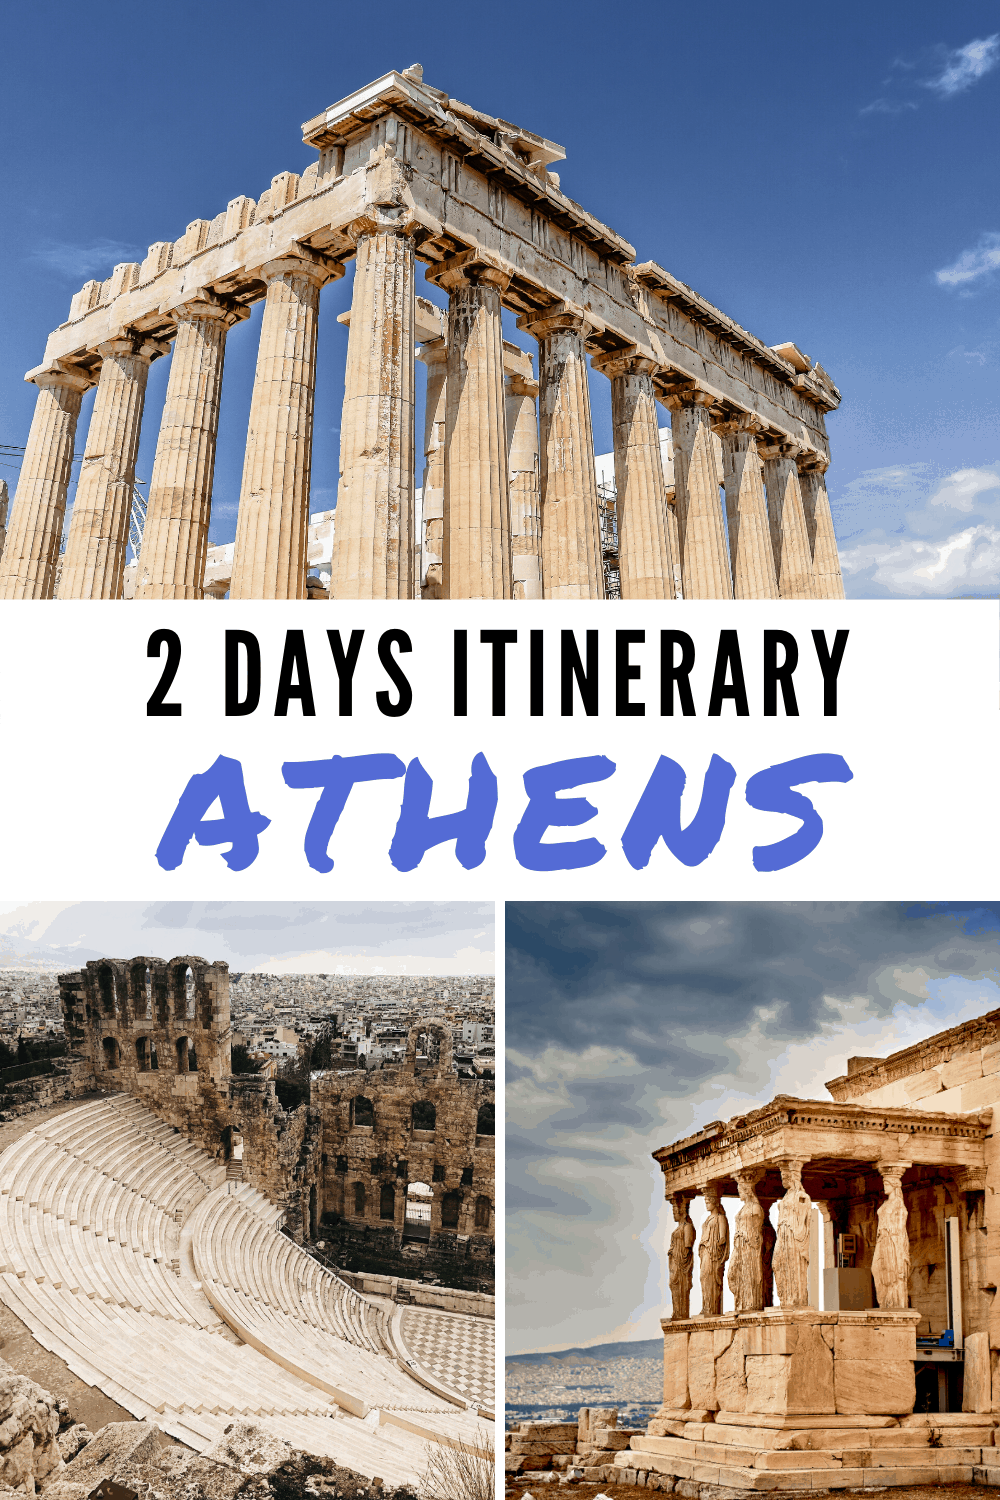 Athens 2 days itinerary